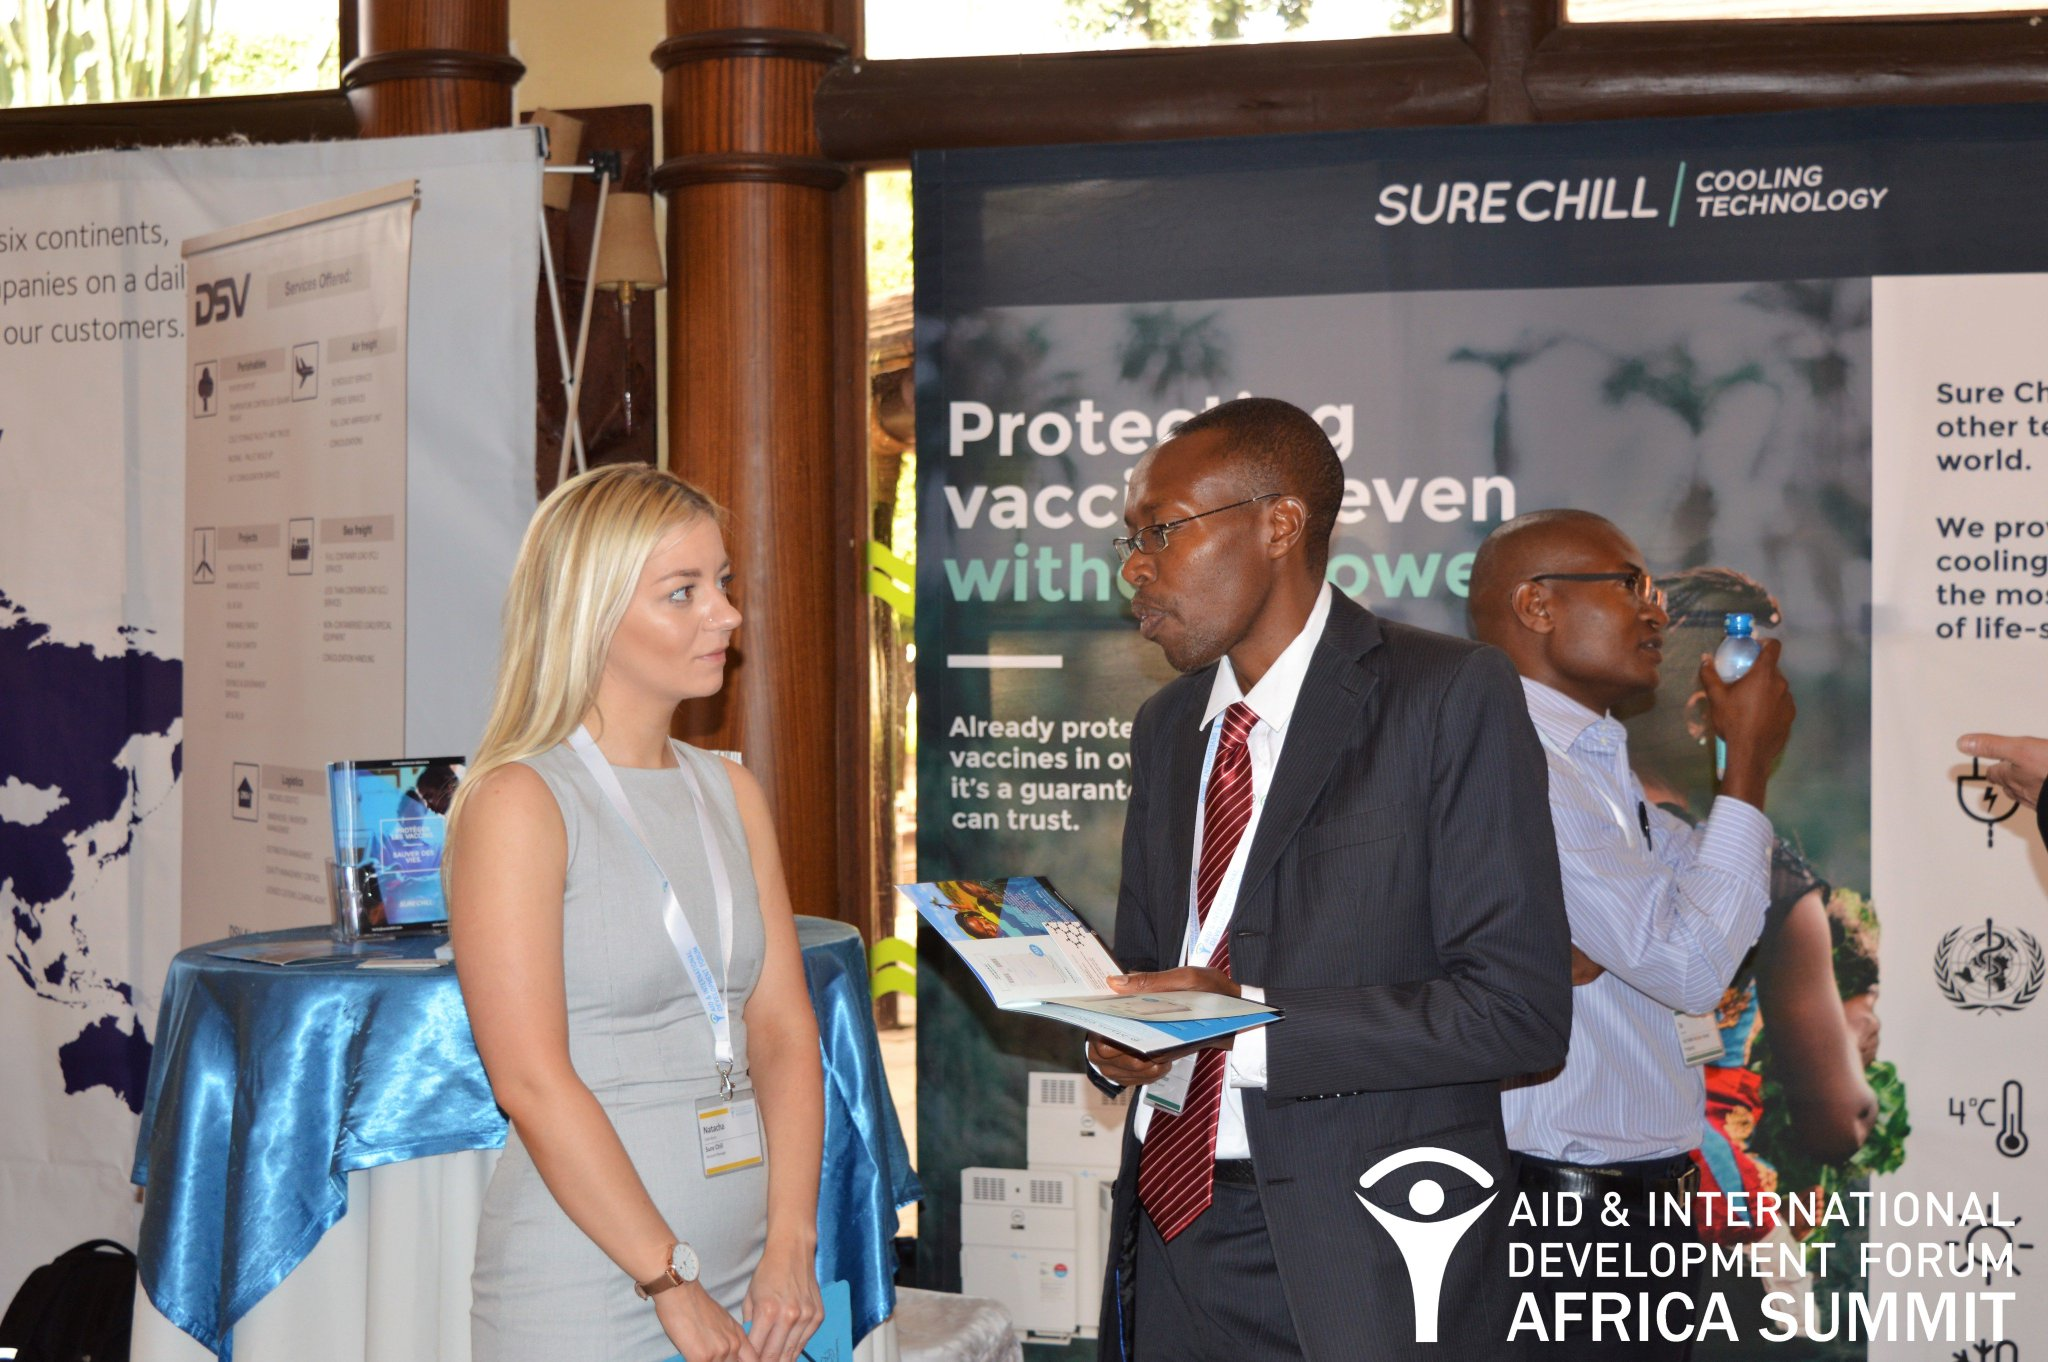 We were papped by @FollowAIDF at the #AIDFAfrica summit, a whole week ago! https://t.co/2ipyyIMkuf